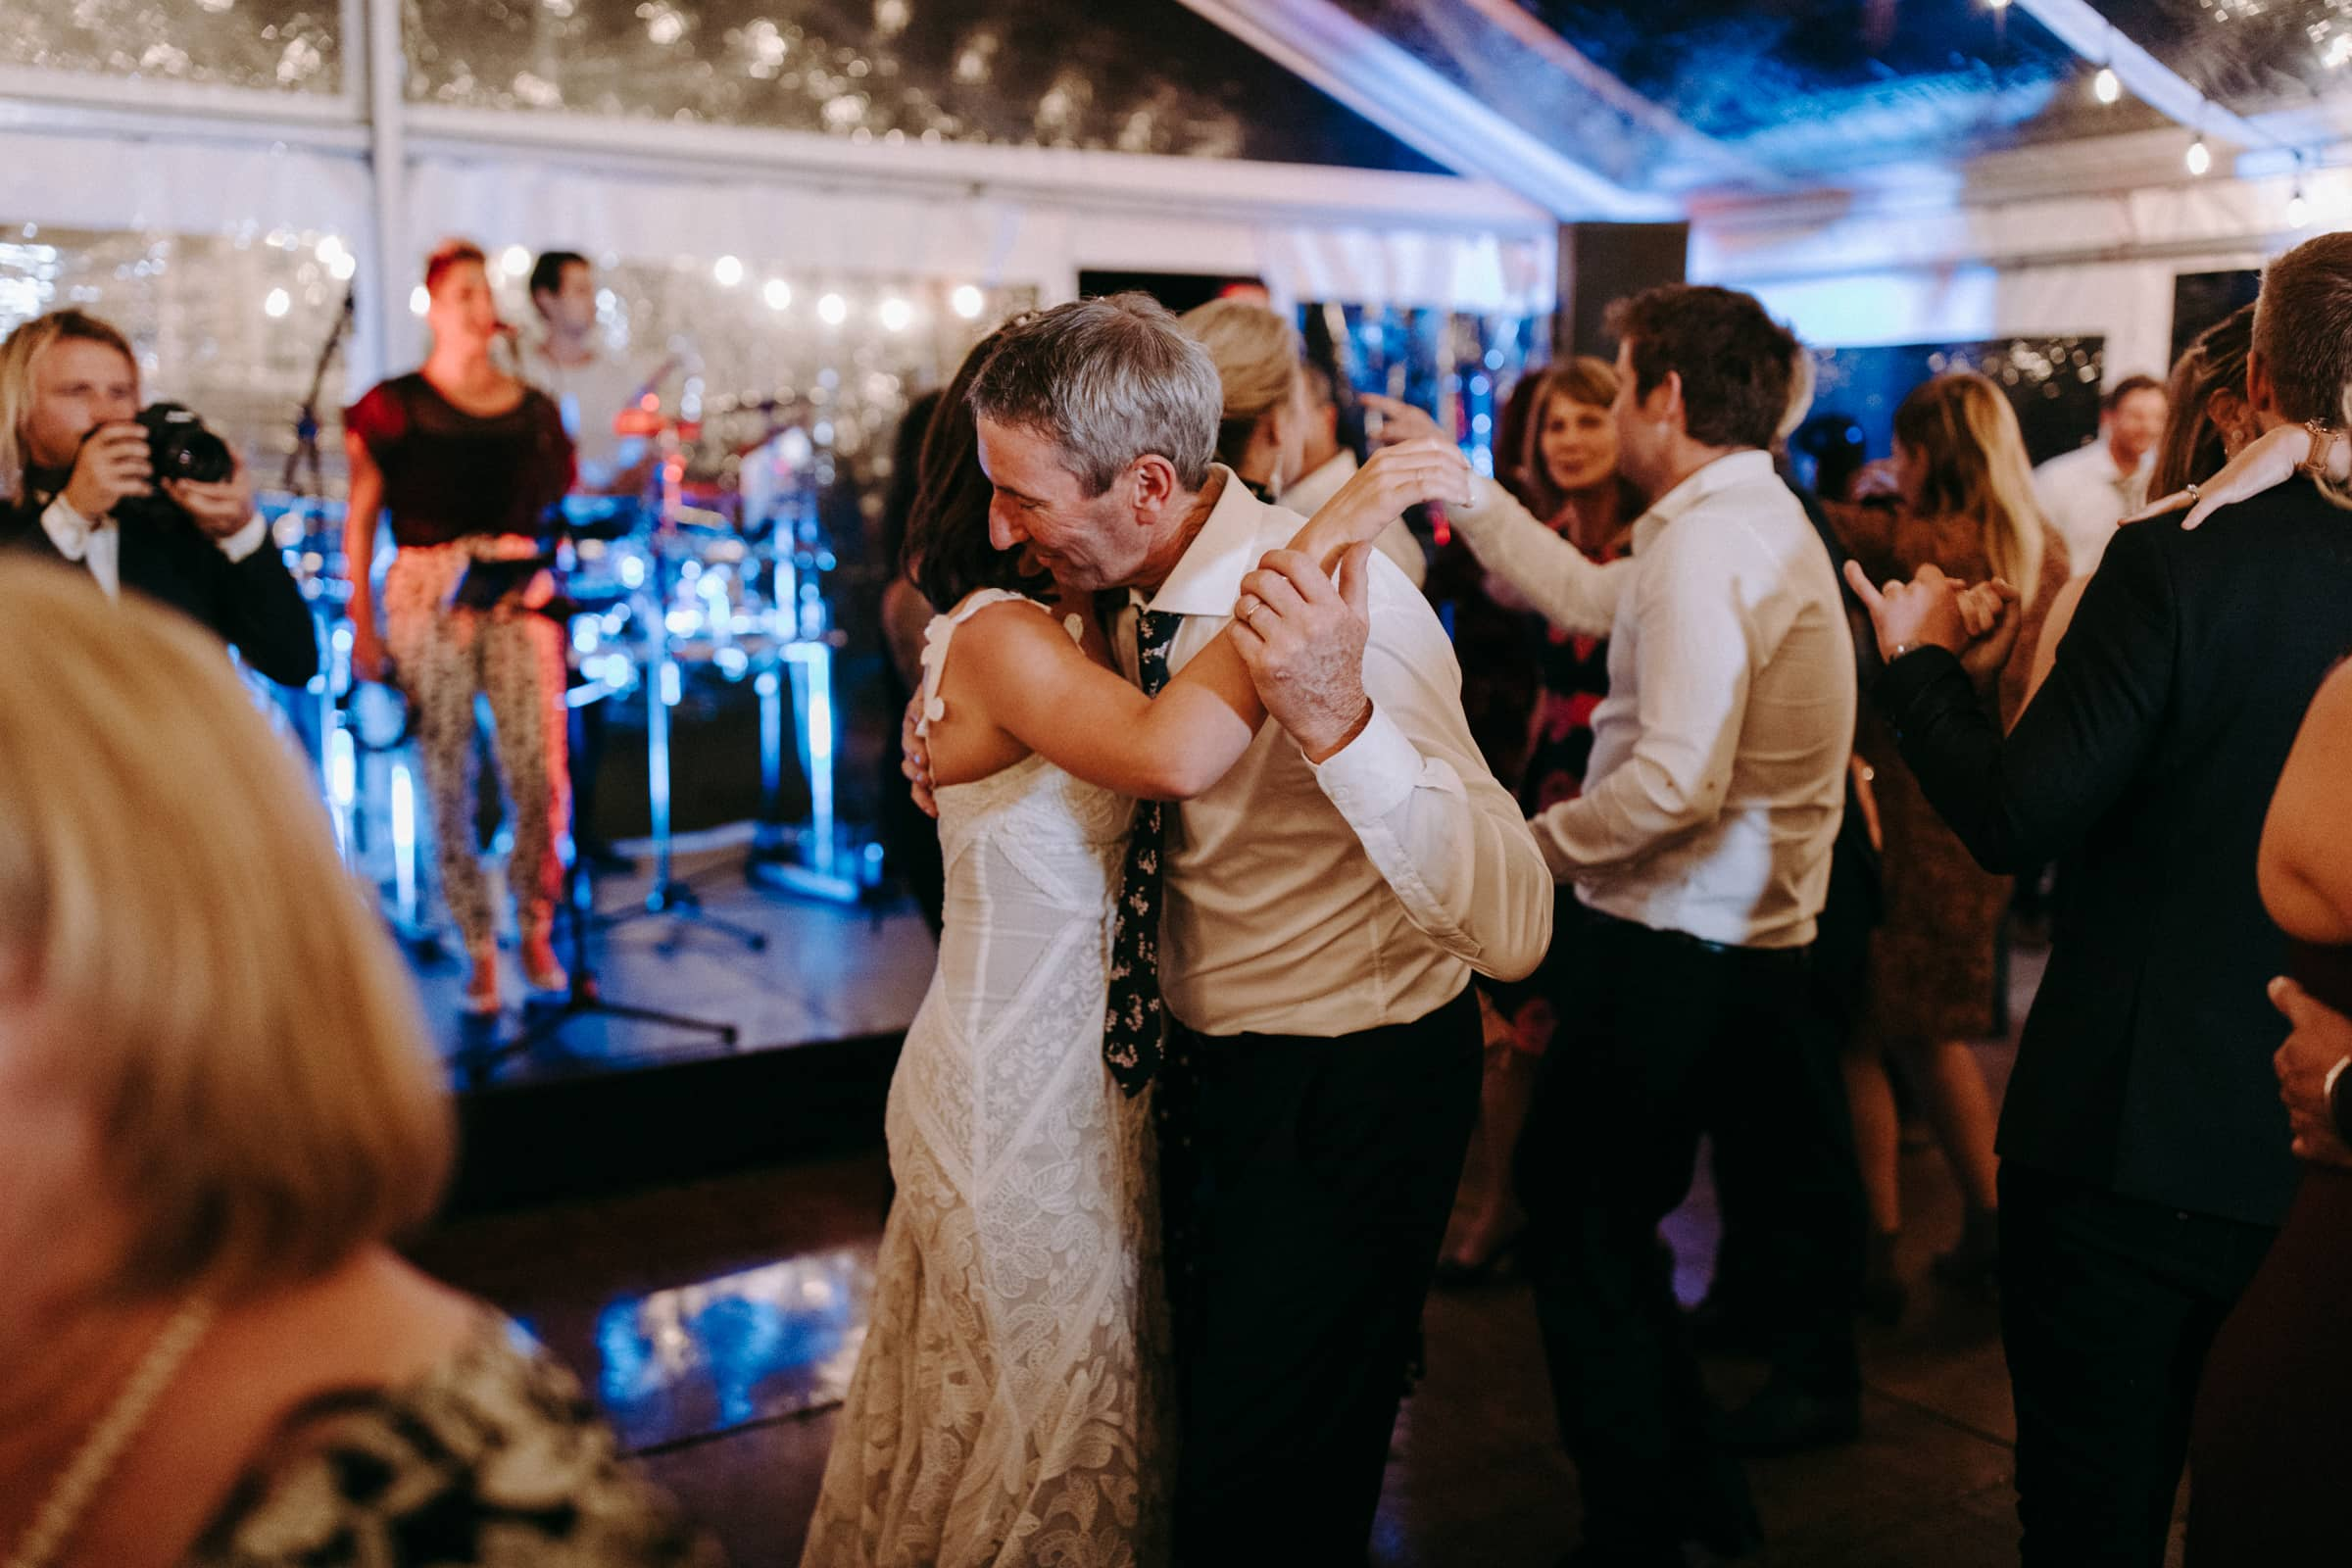 A bride and her father are dancing next to other wedding guests.